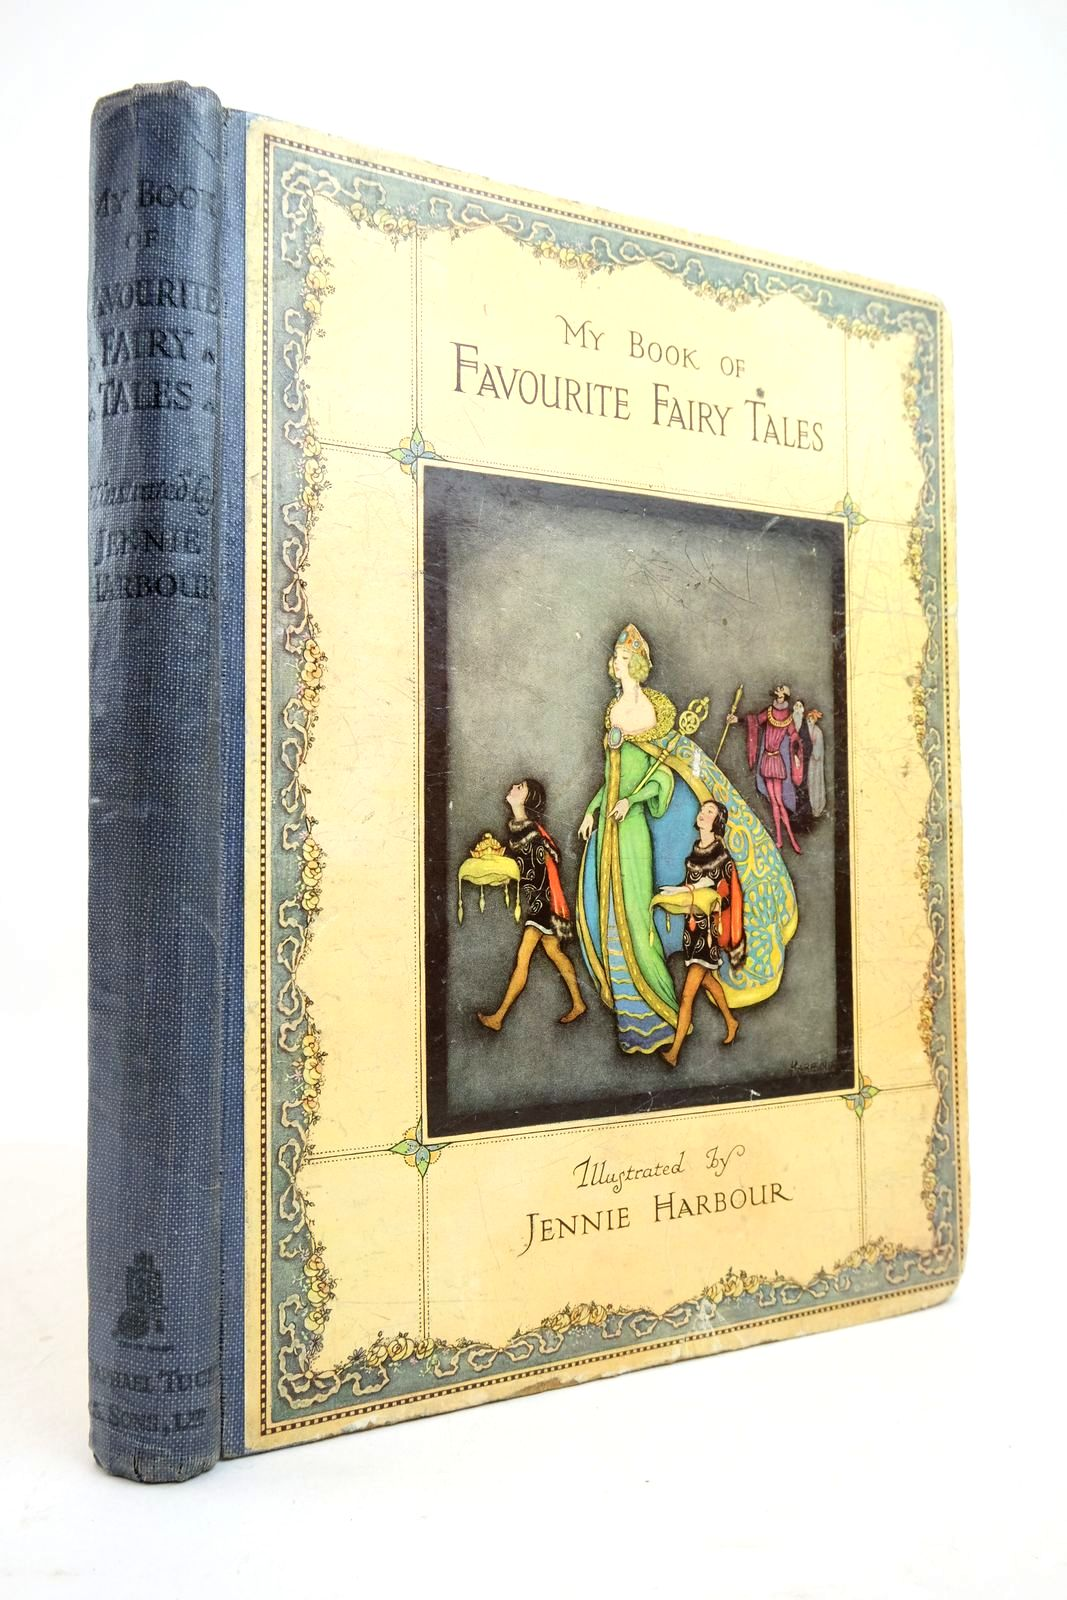 Photo of MY BOOK OF FAVOURITE FAIRY TALES- Stock Number: 2134783